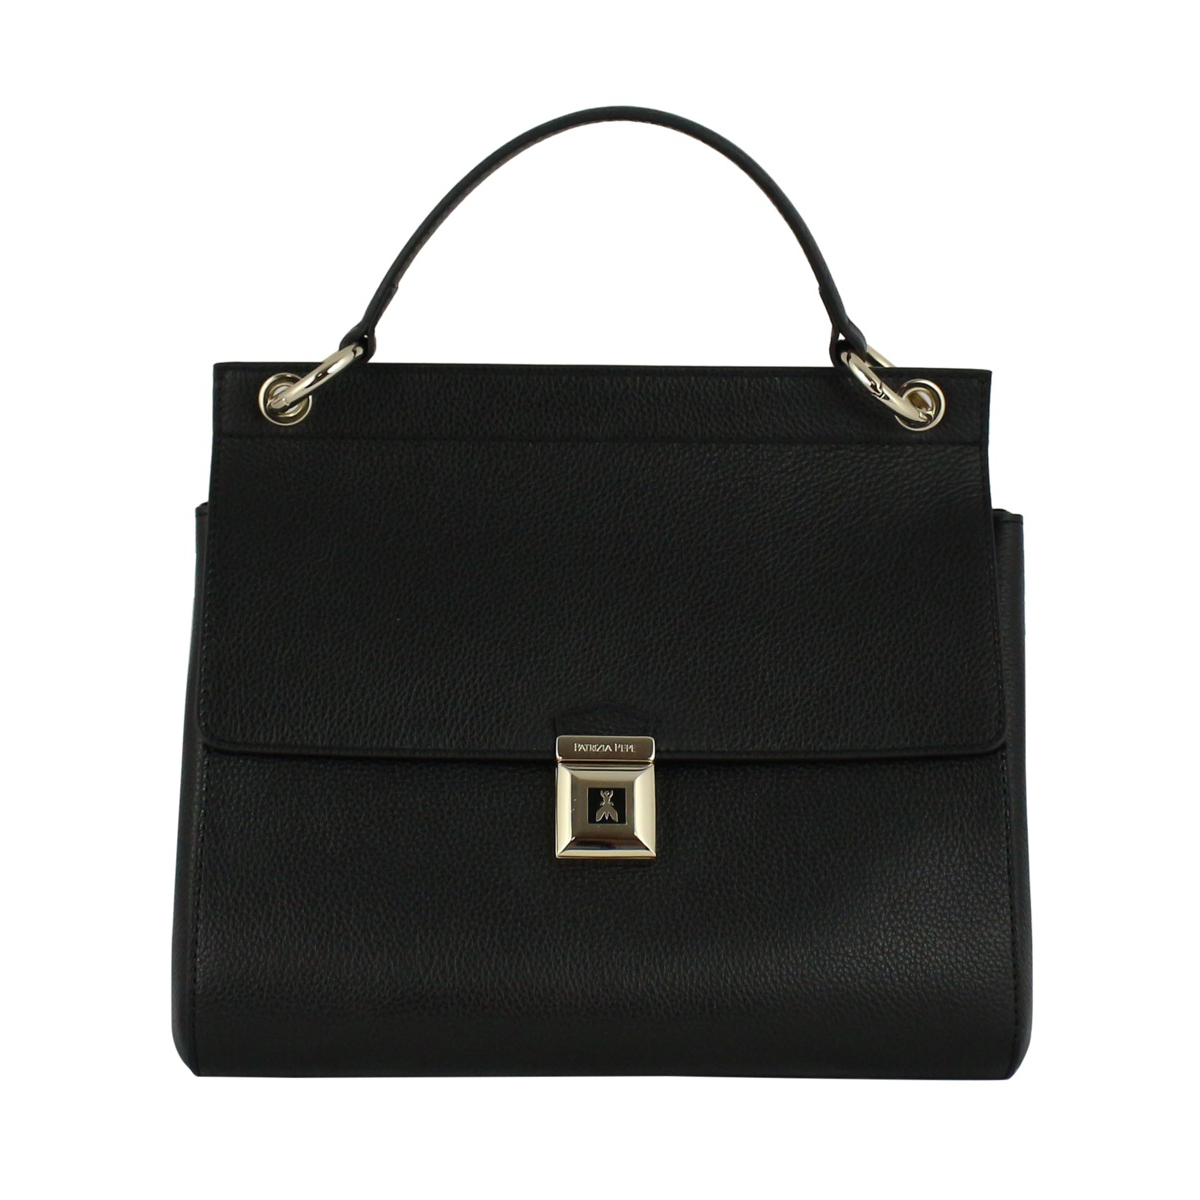 Handbag in hammered leather Black Patrizia Pepe